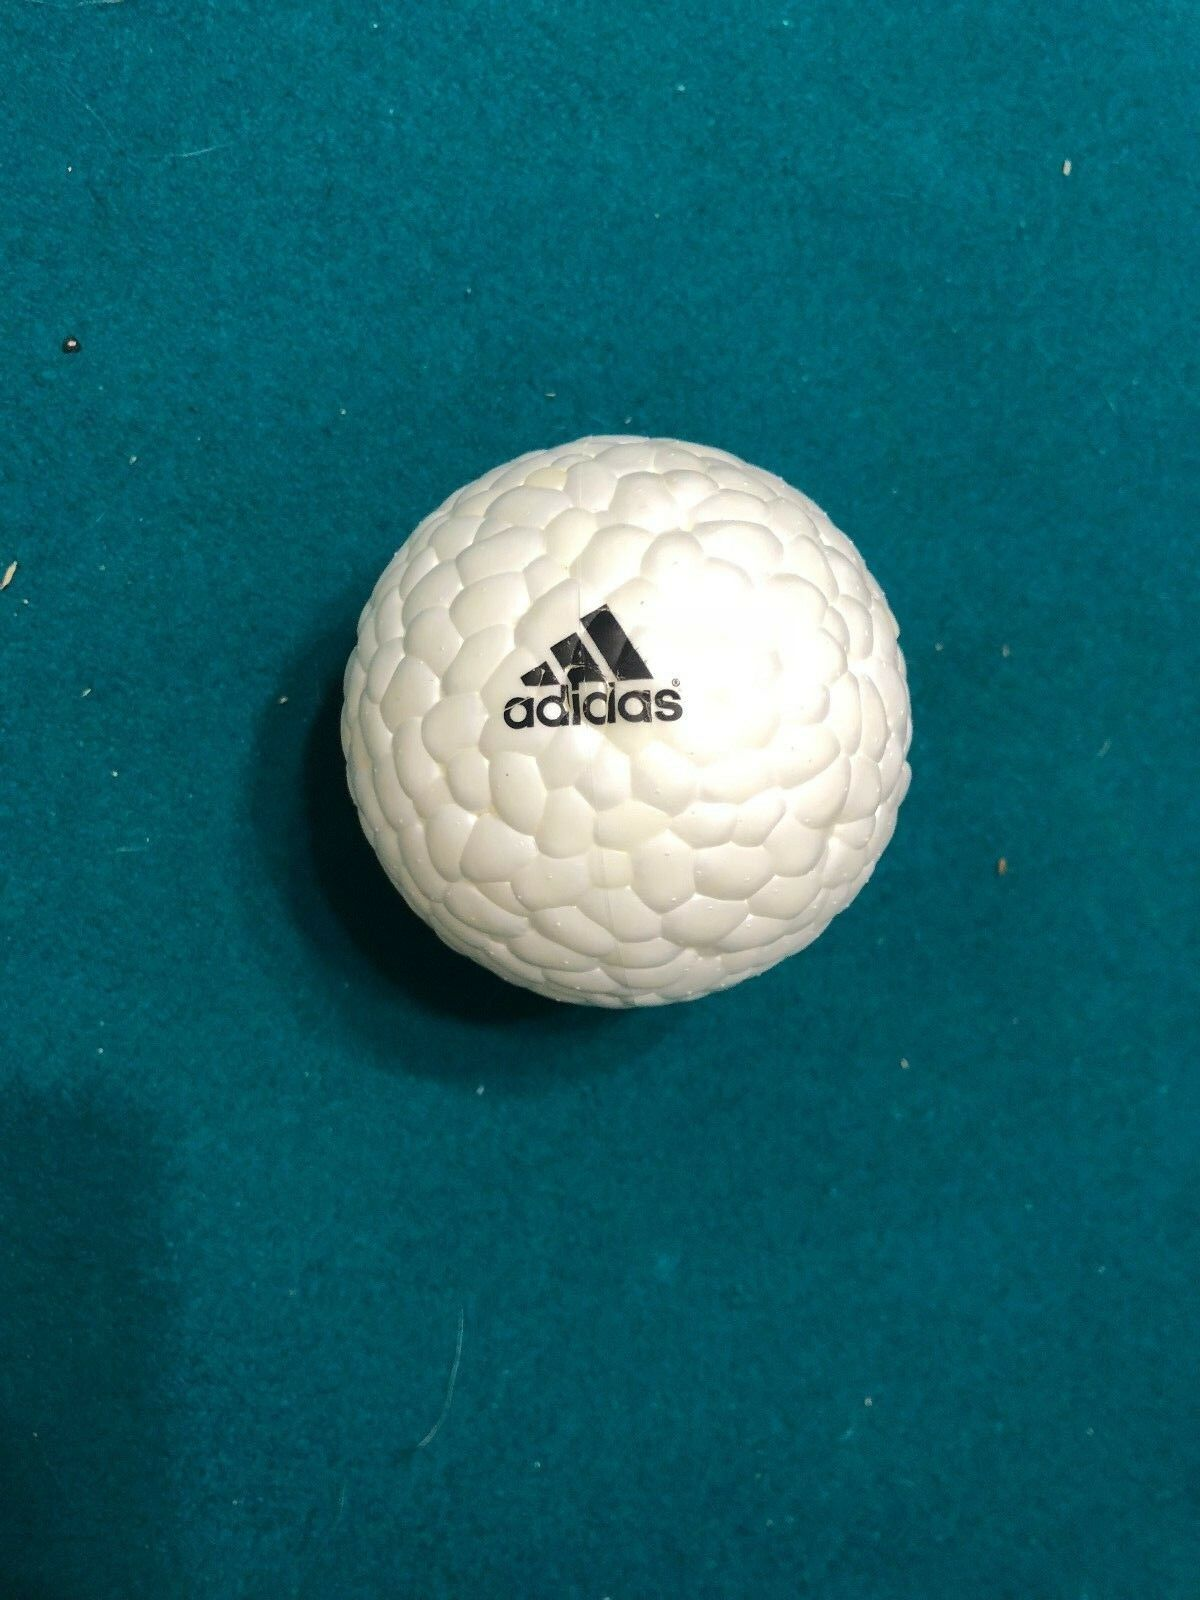 ADIDAS BOOST NEW BALL 100% AUTHENTIC GUARANTEED NEW BOOST 91116d